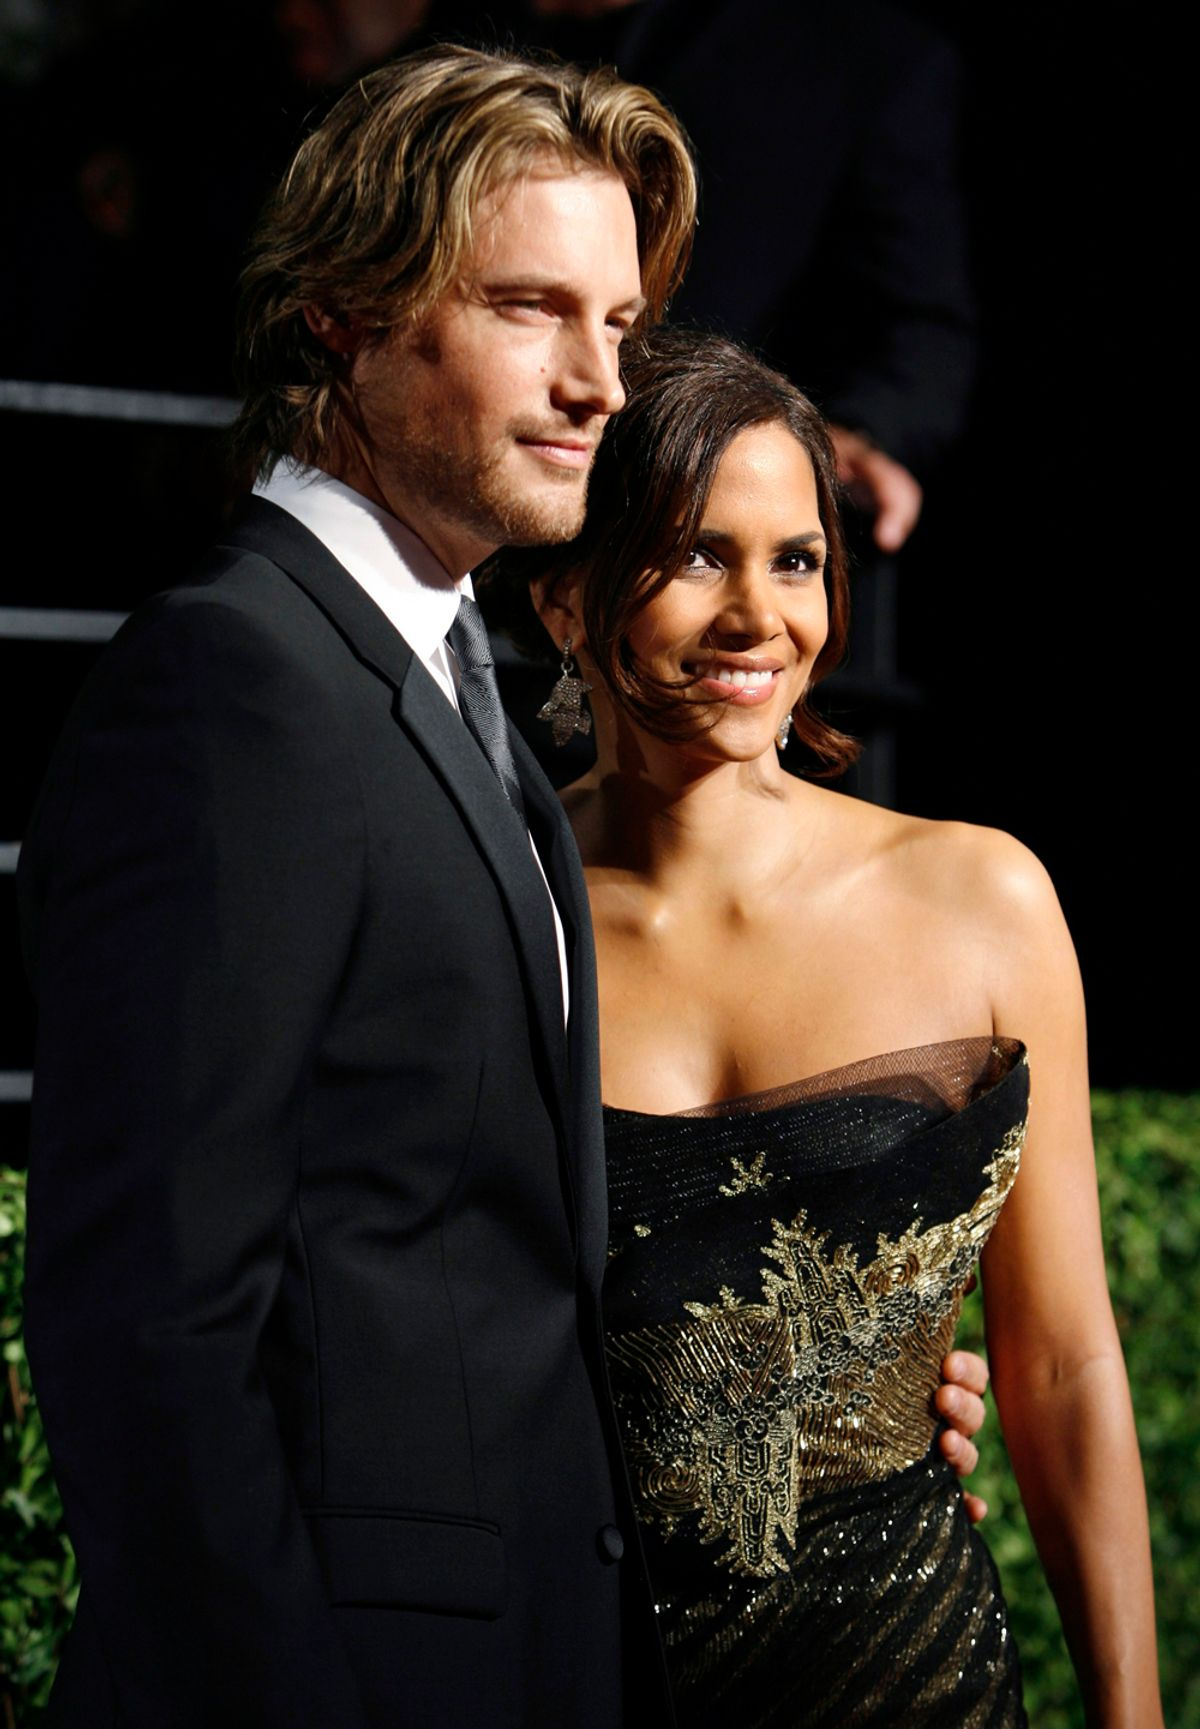 Actress Halle Berry and model Gabriel Aubry pose as they arrive at the 2009 Vanity Fair Oscar Party in West Hollywood, California February 22, 2009. REUTERS/Danny Moloshok  (UNITED STATES) (OSCARS-PARTY) (© Danny Moloshok / Reuters)